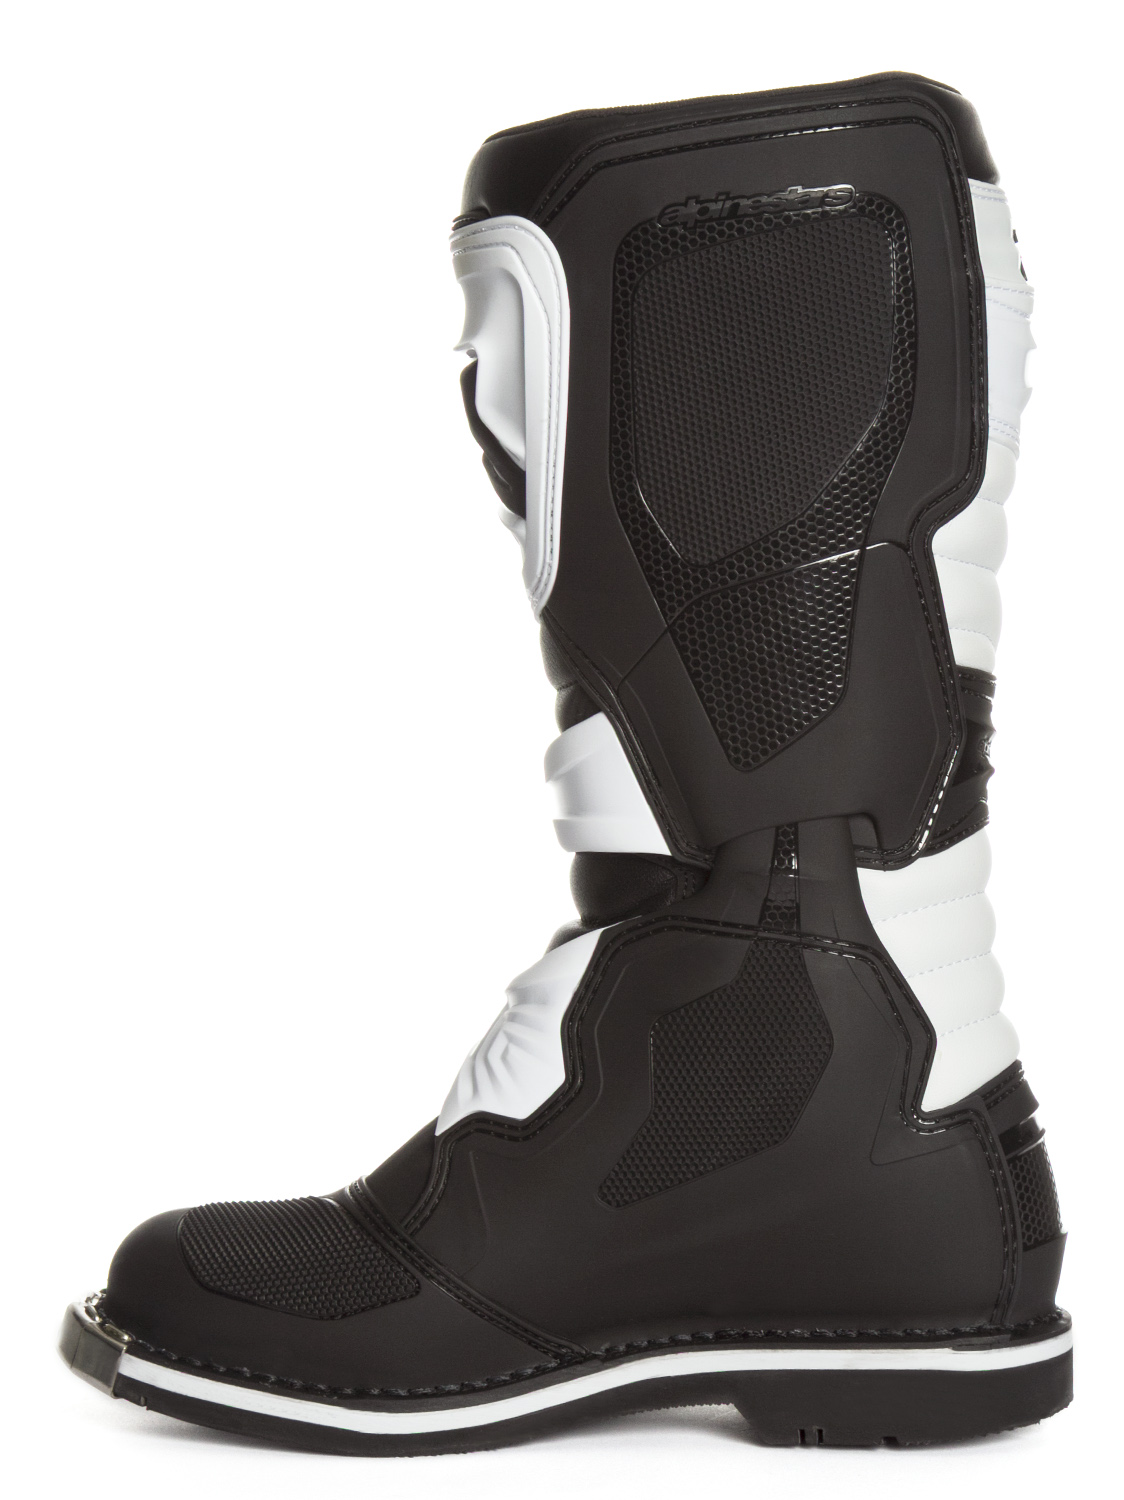 alpinestars tech 1 boots black white sixstar racing. Black Bedroom Furniture Sets. Home Design Ideas